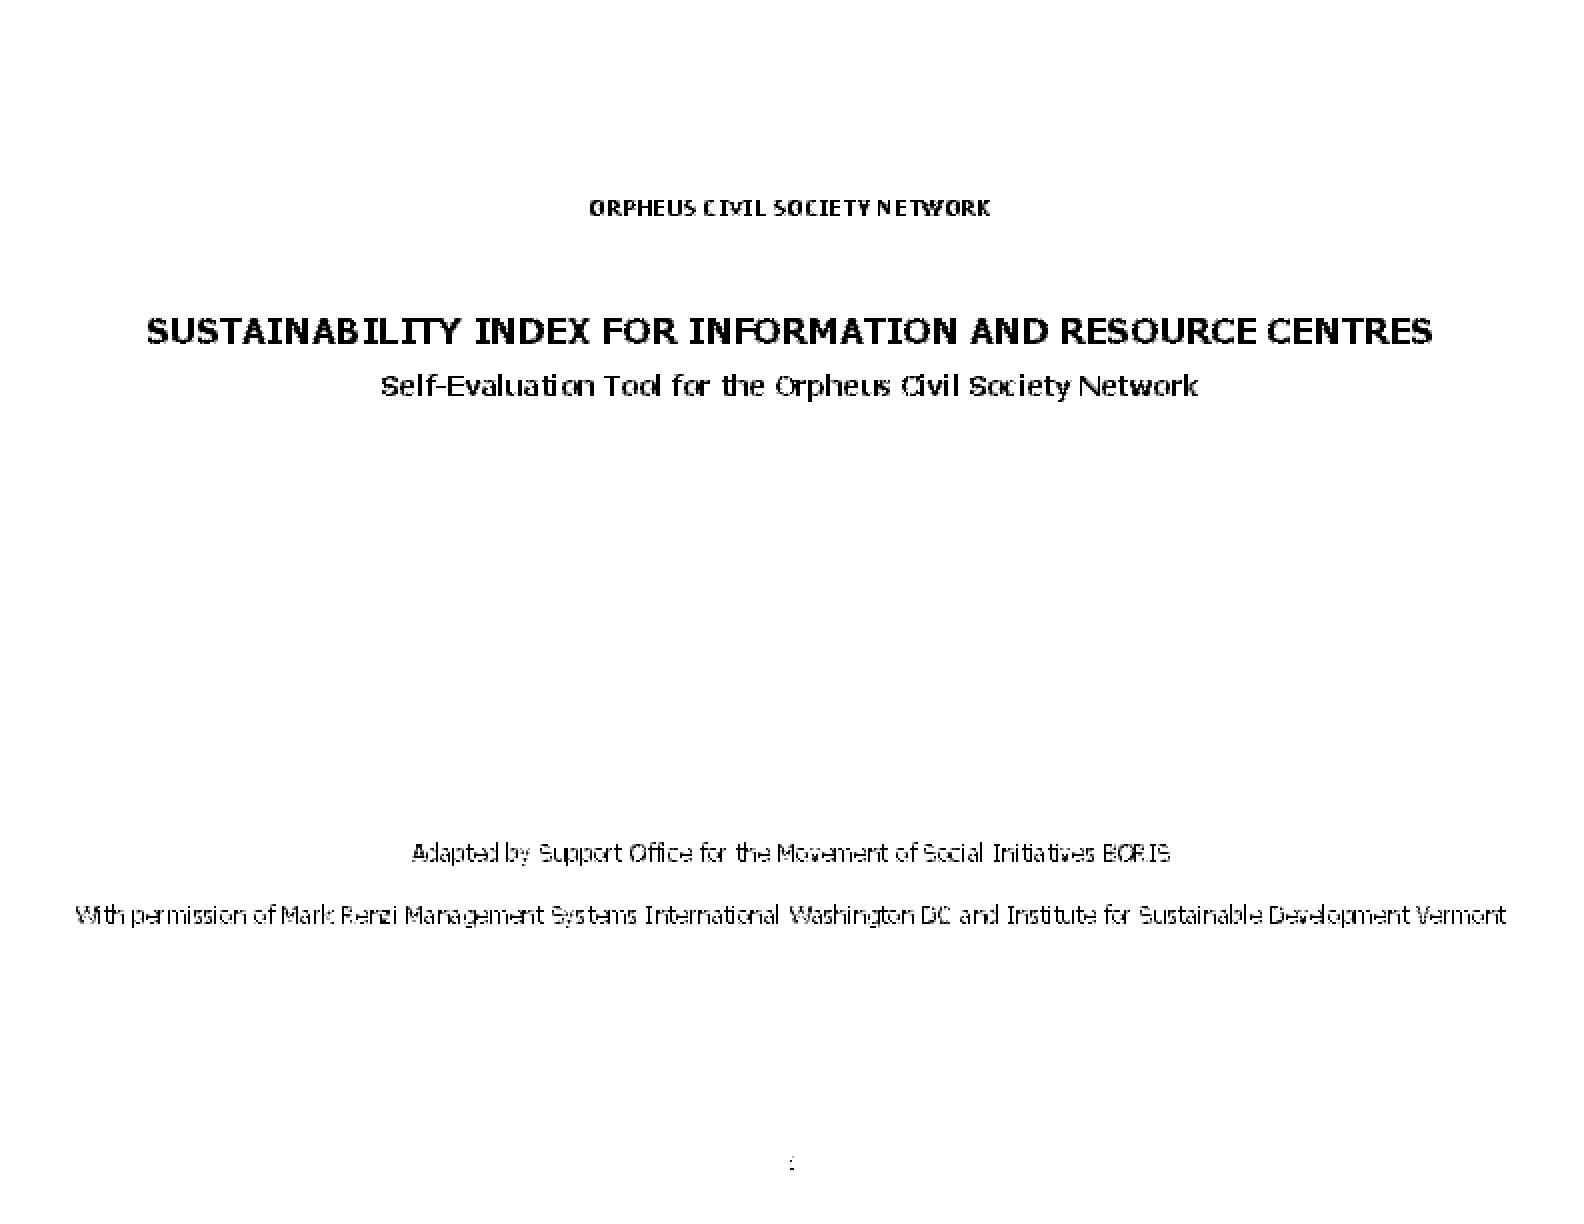 Sustainability Index For Information and Resource Centres: Self-evaluation Tool For the Orpheus Civil Society Network